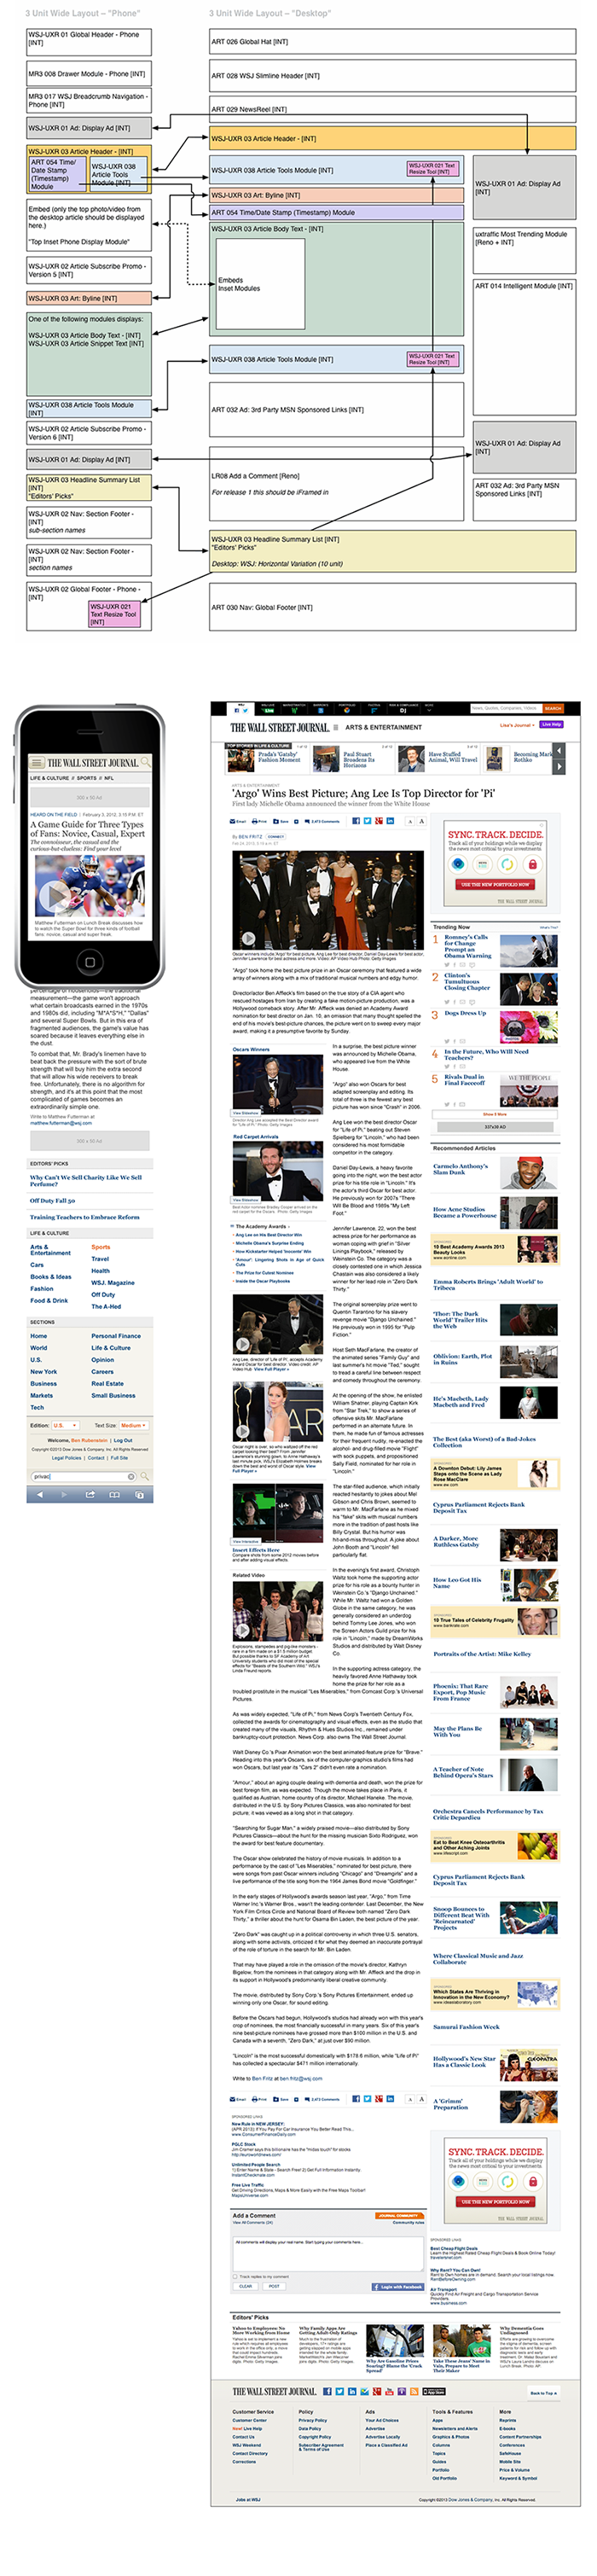 wsj_8_responsive-all_700